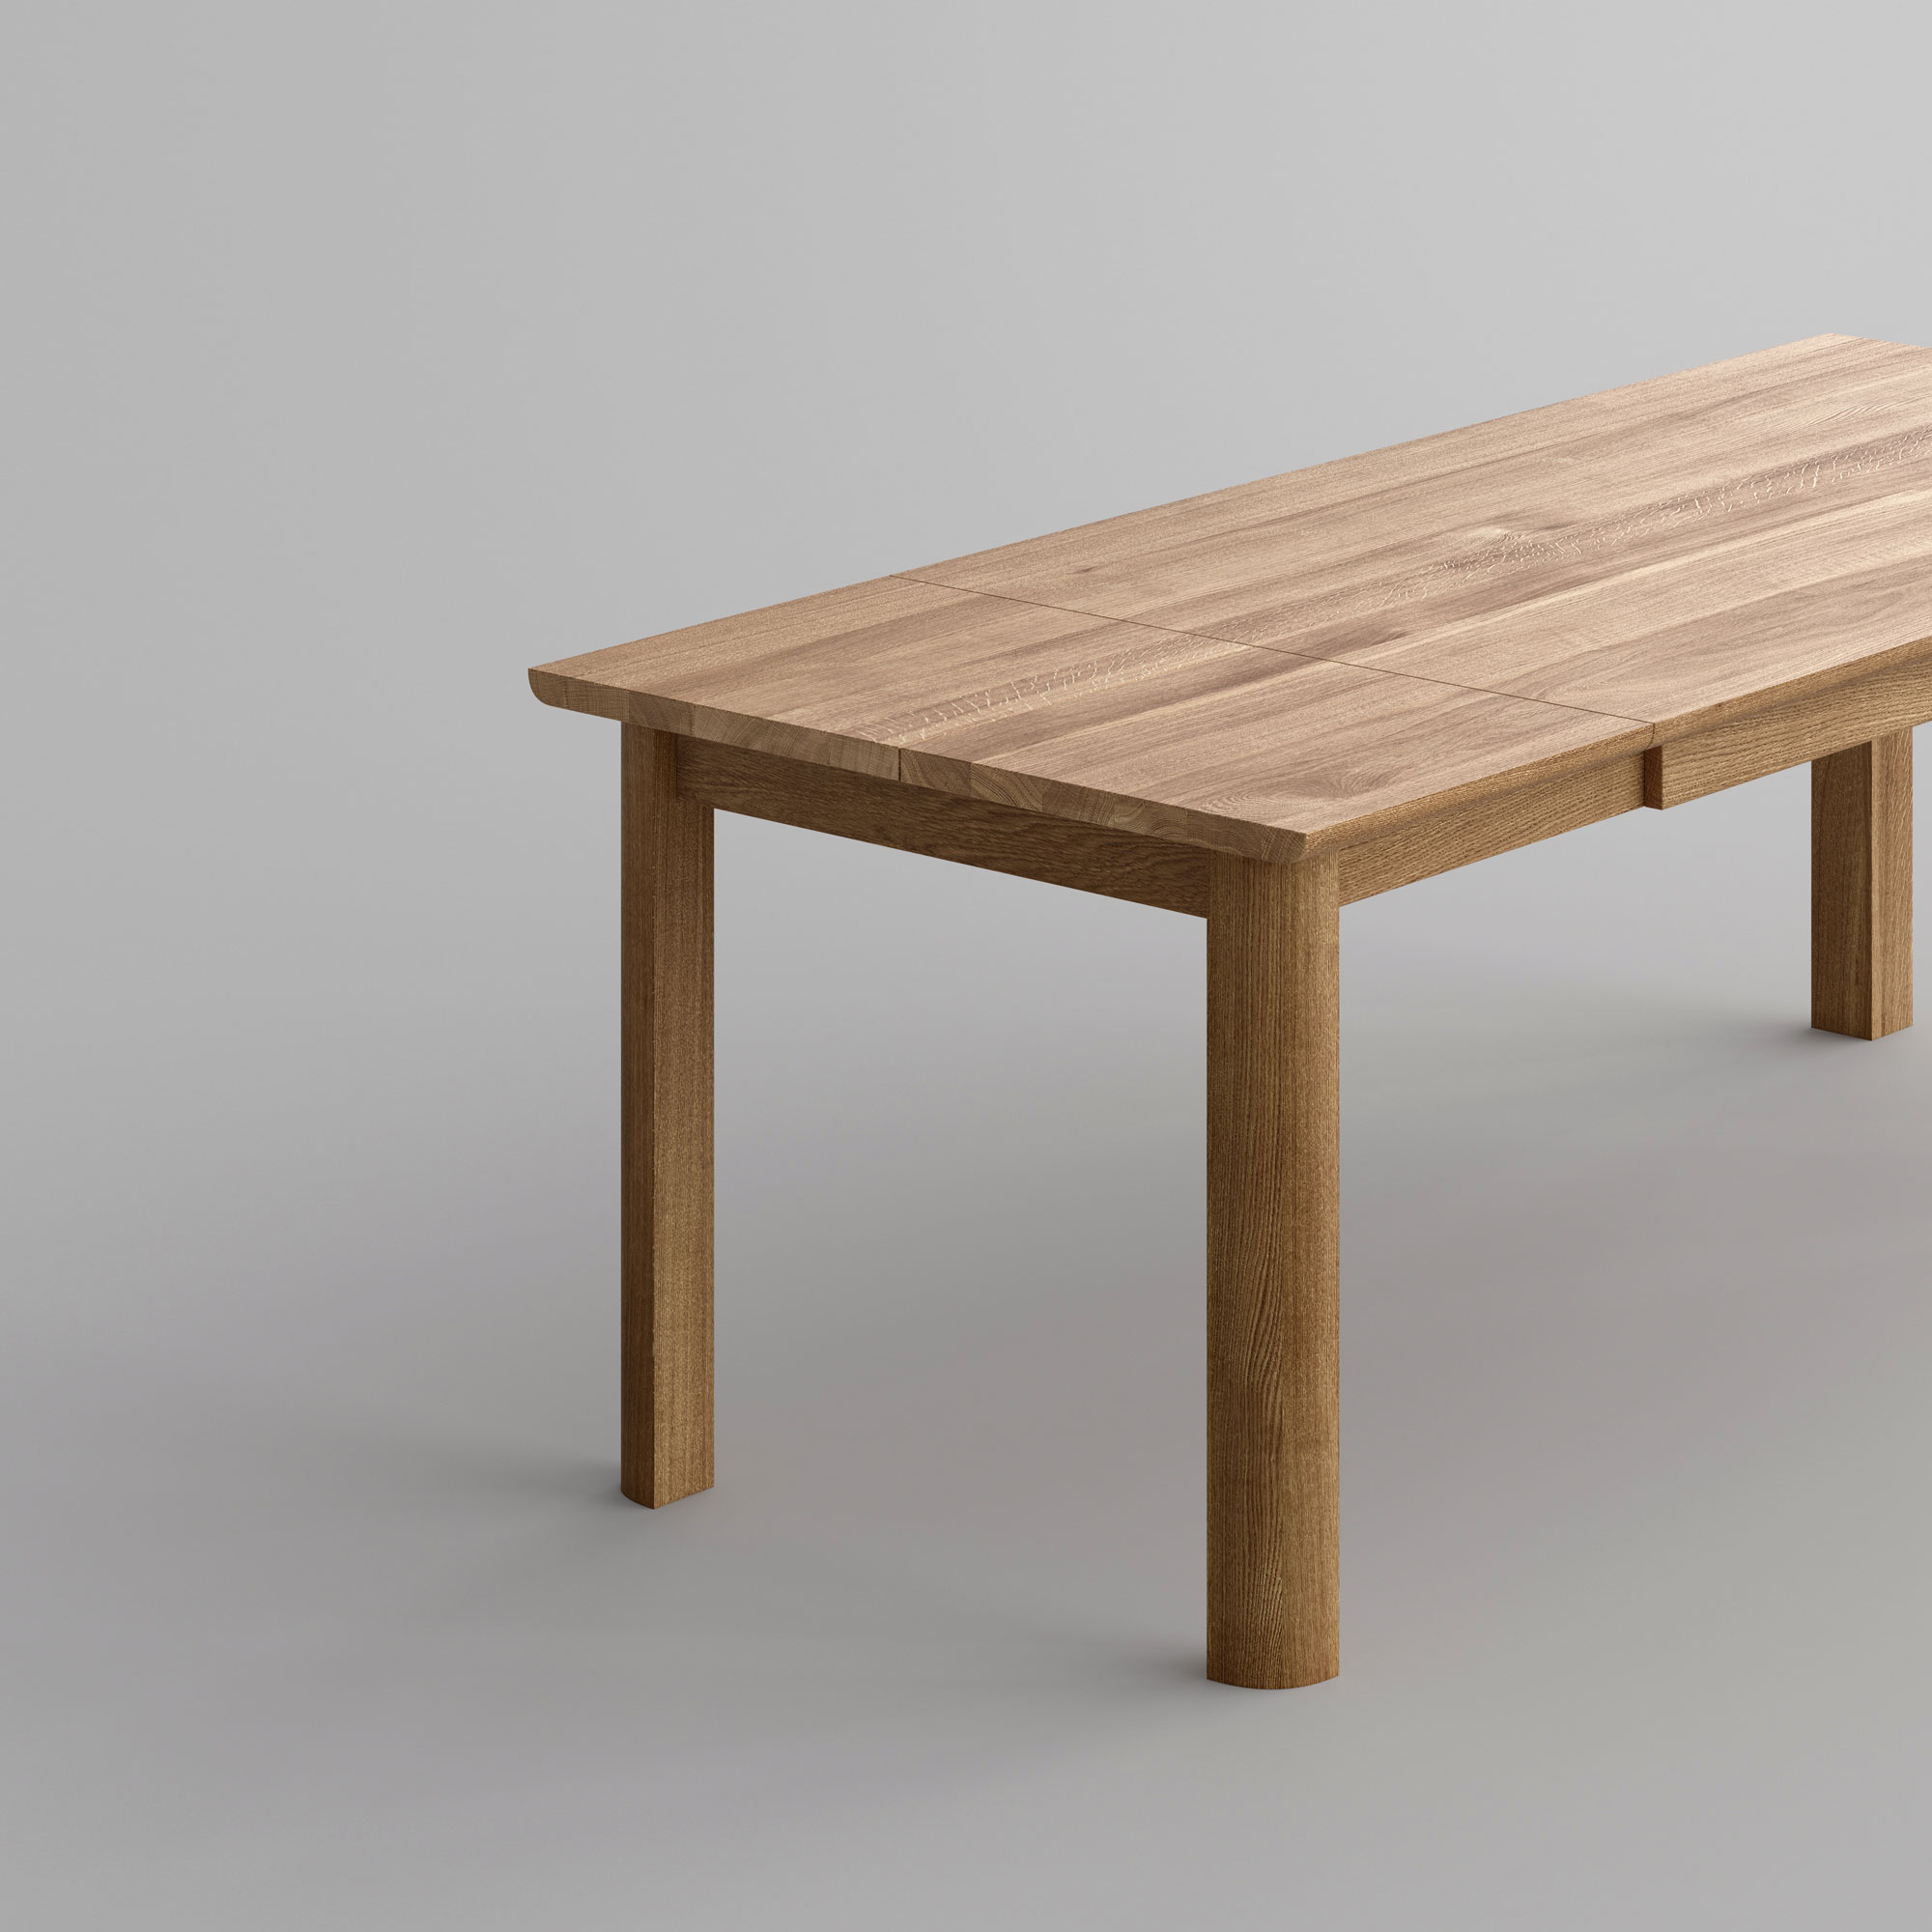 Extendable Dining Table VIVUS BUTTERFLY Cam2-SP1 custom made in solid wood by vitamin design